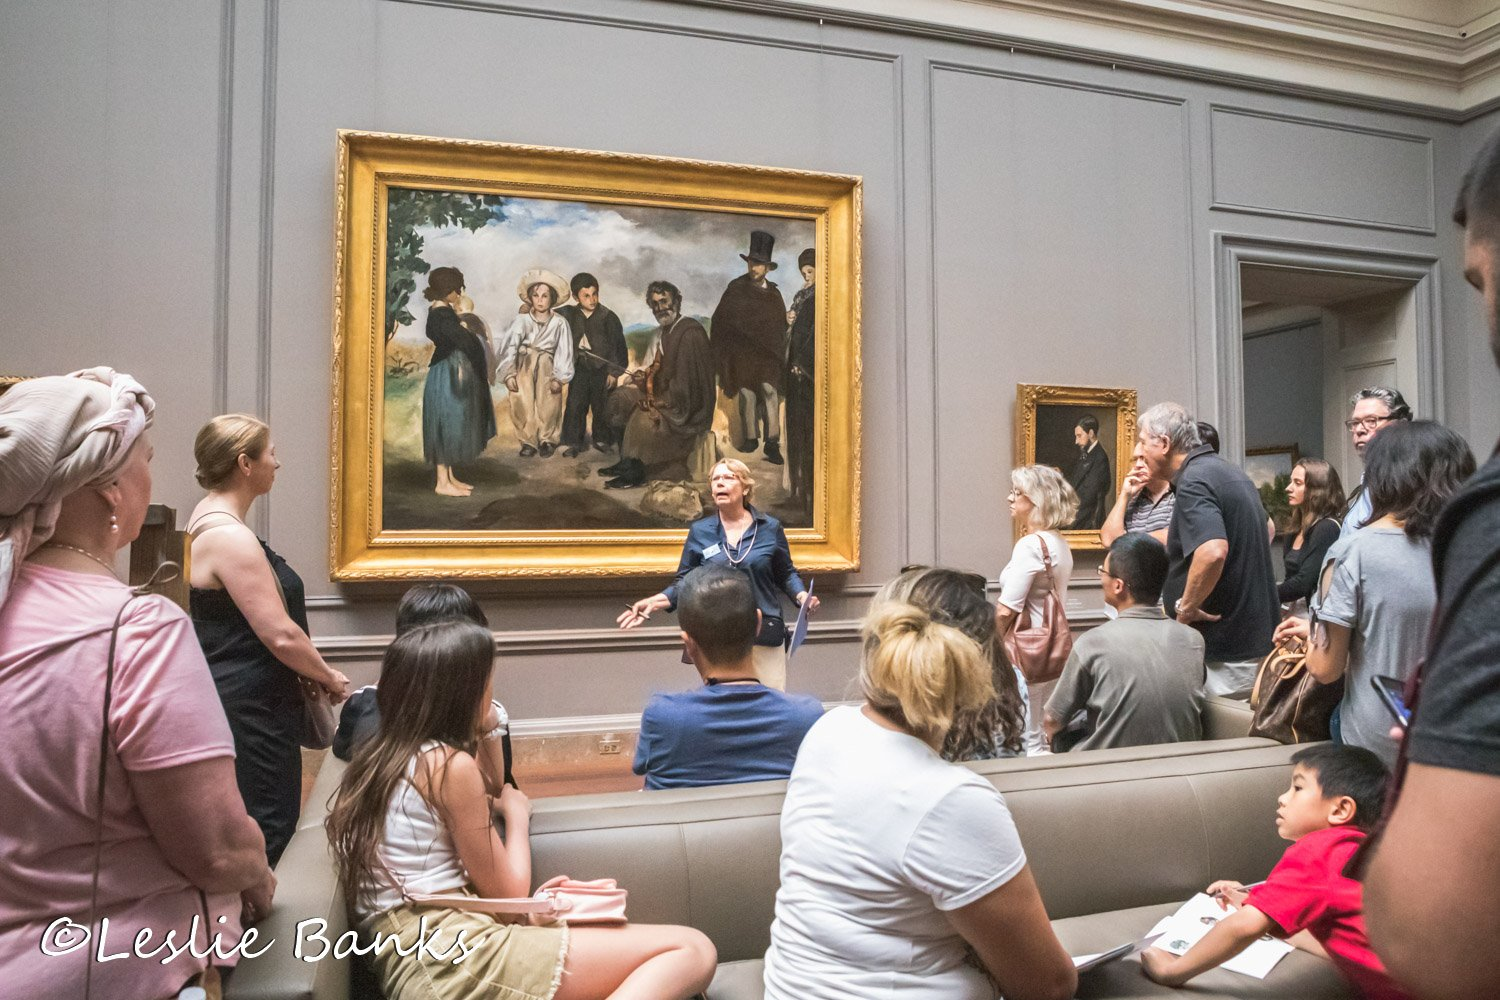 Tour Guide at National Gallery of Art